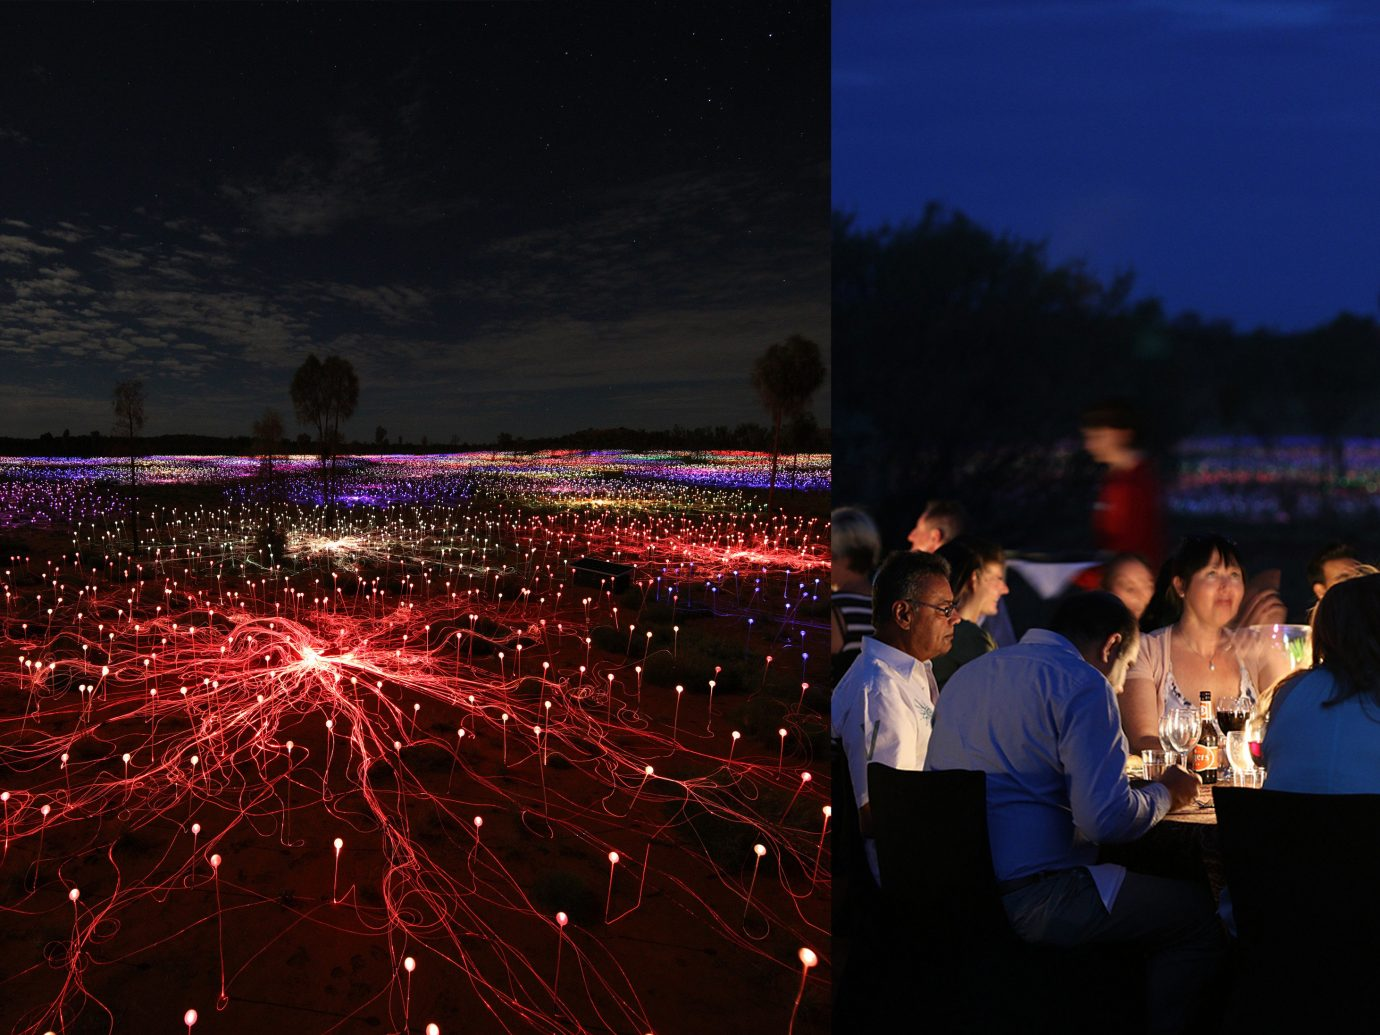 Food + Drink outdoor crowd night outdoor object light atmosphere of earth evening audience dark